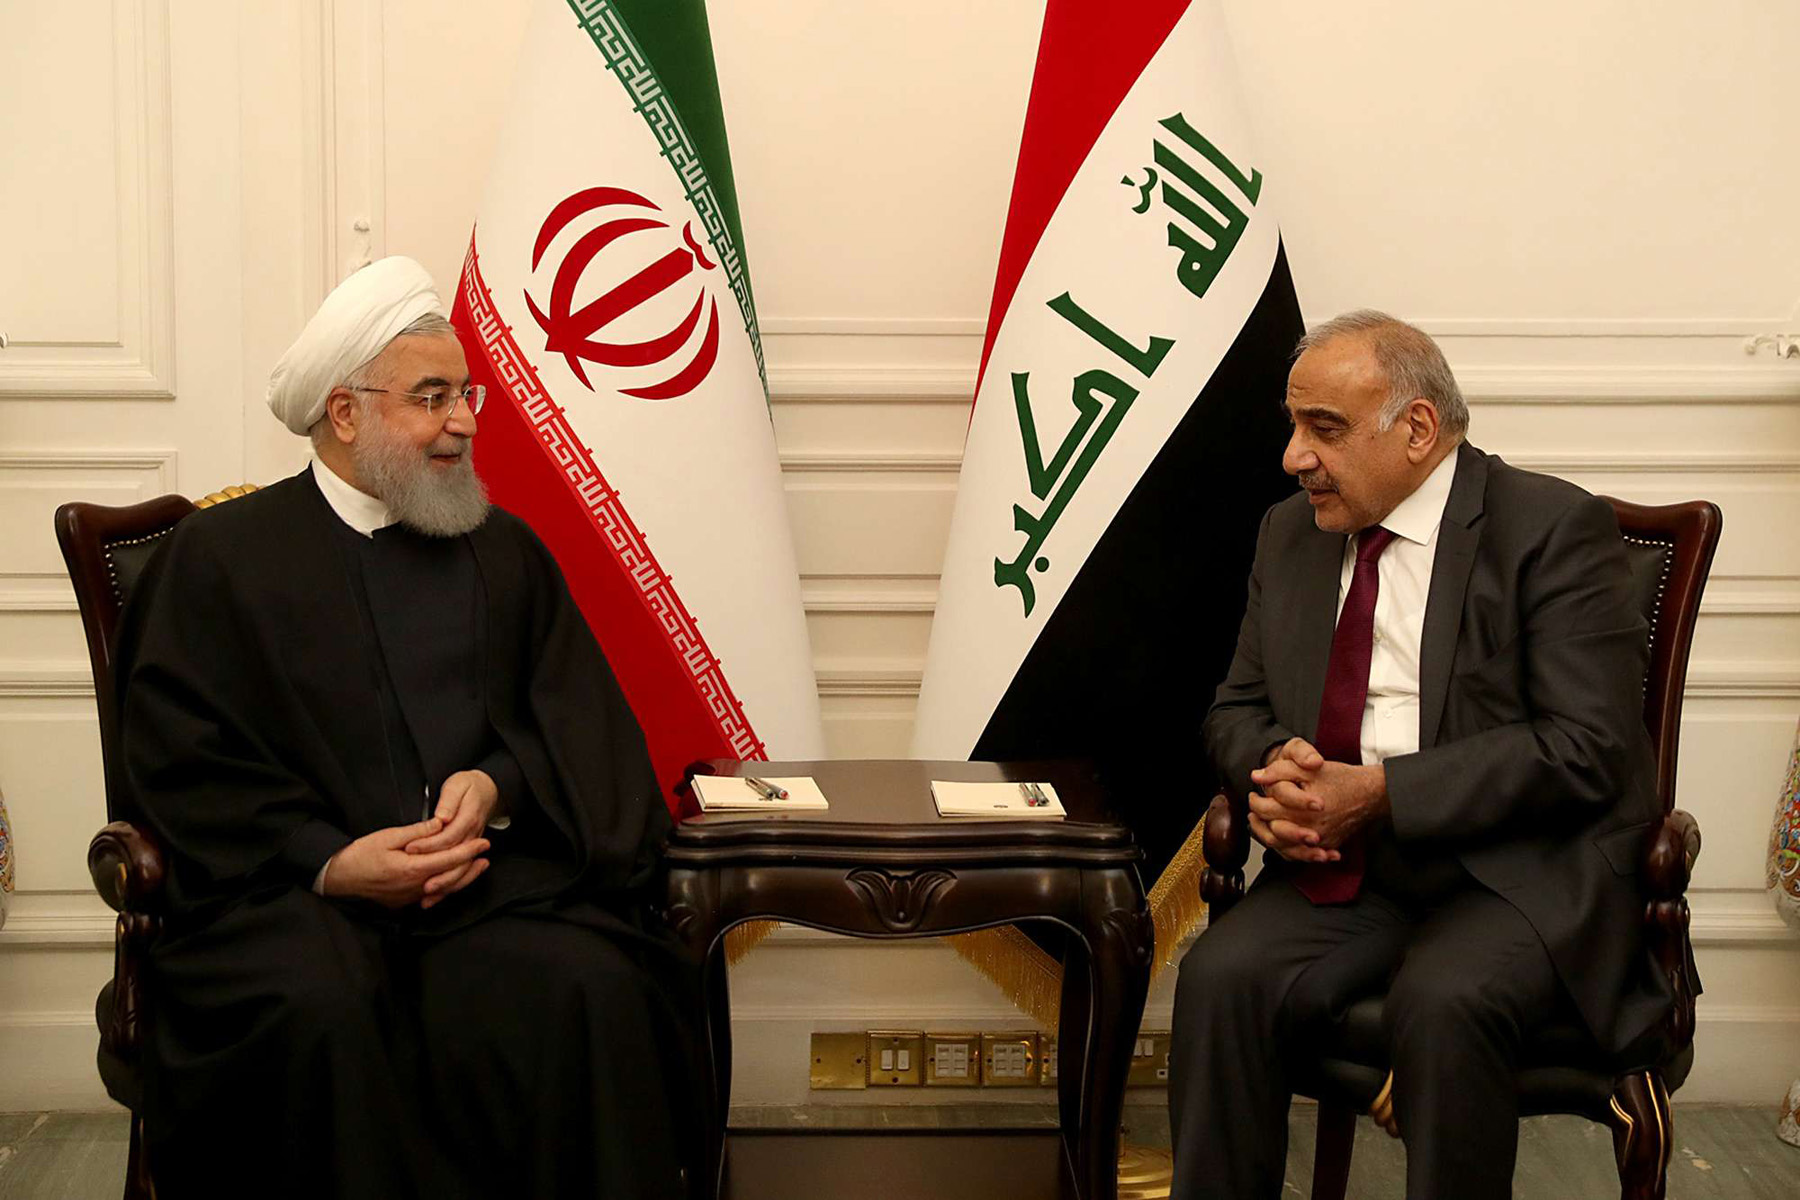 Encroachment ambitions. Iraqi Prime Minister Adel Abdul-Mahdi (R) meets with Iranian President Hassan Rohani in Baghdad, March 11.  (Reuters)